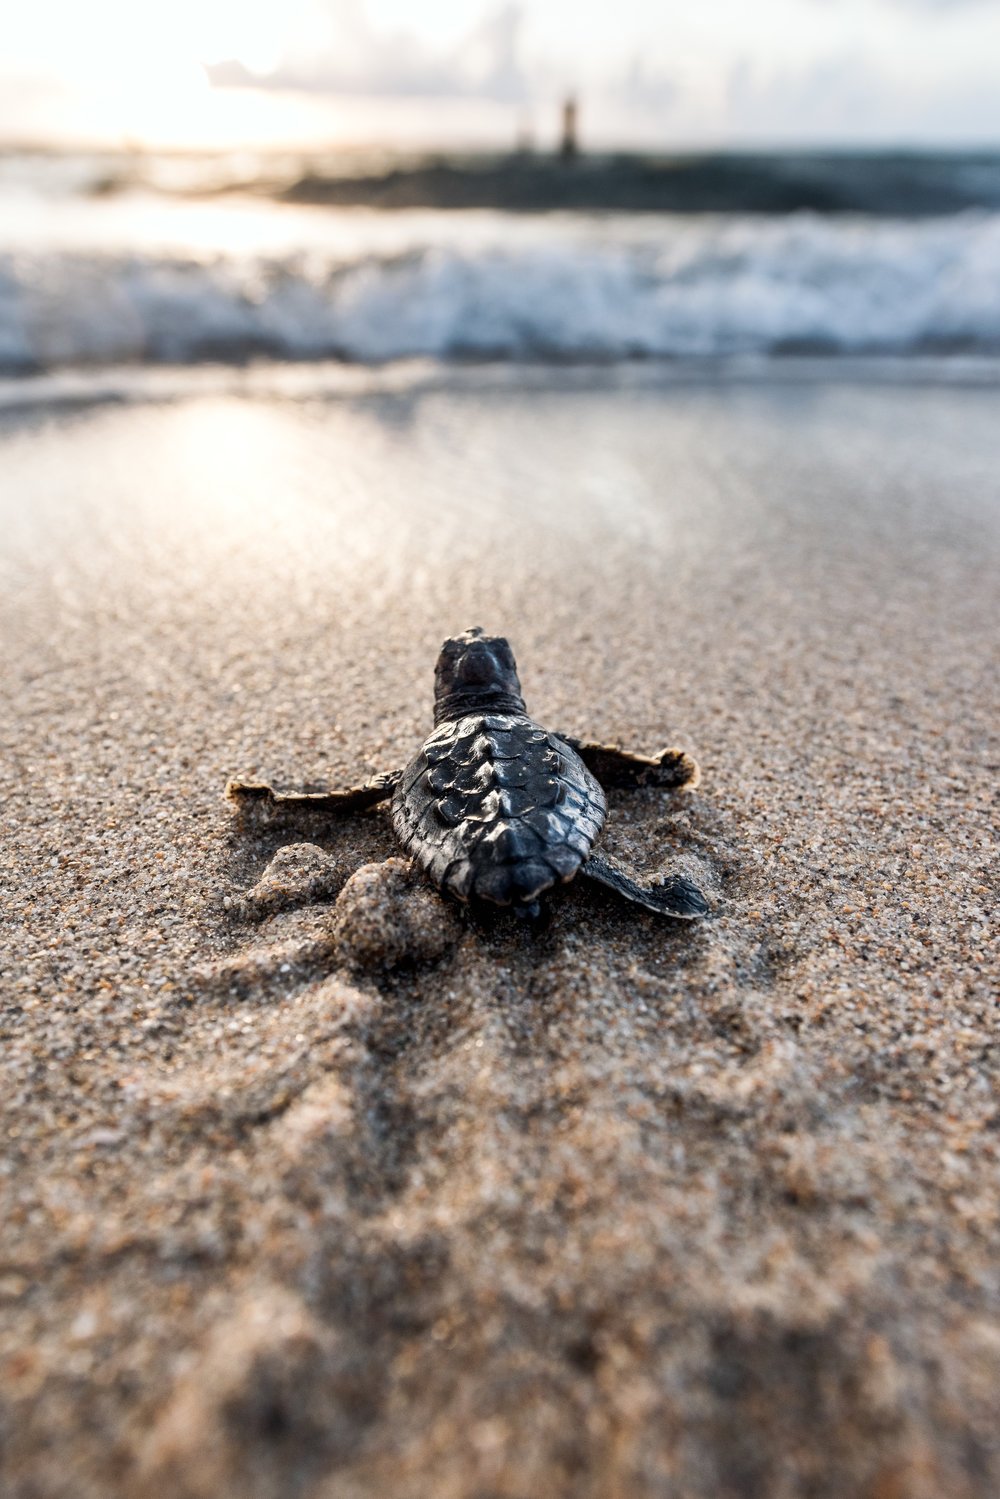 Save our turtles! Protect our beaches.